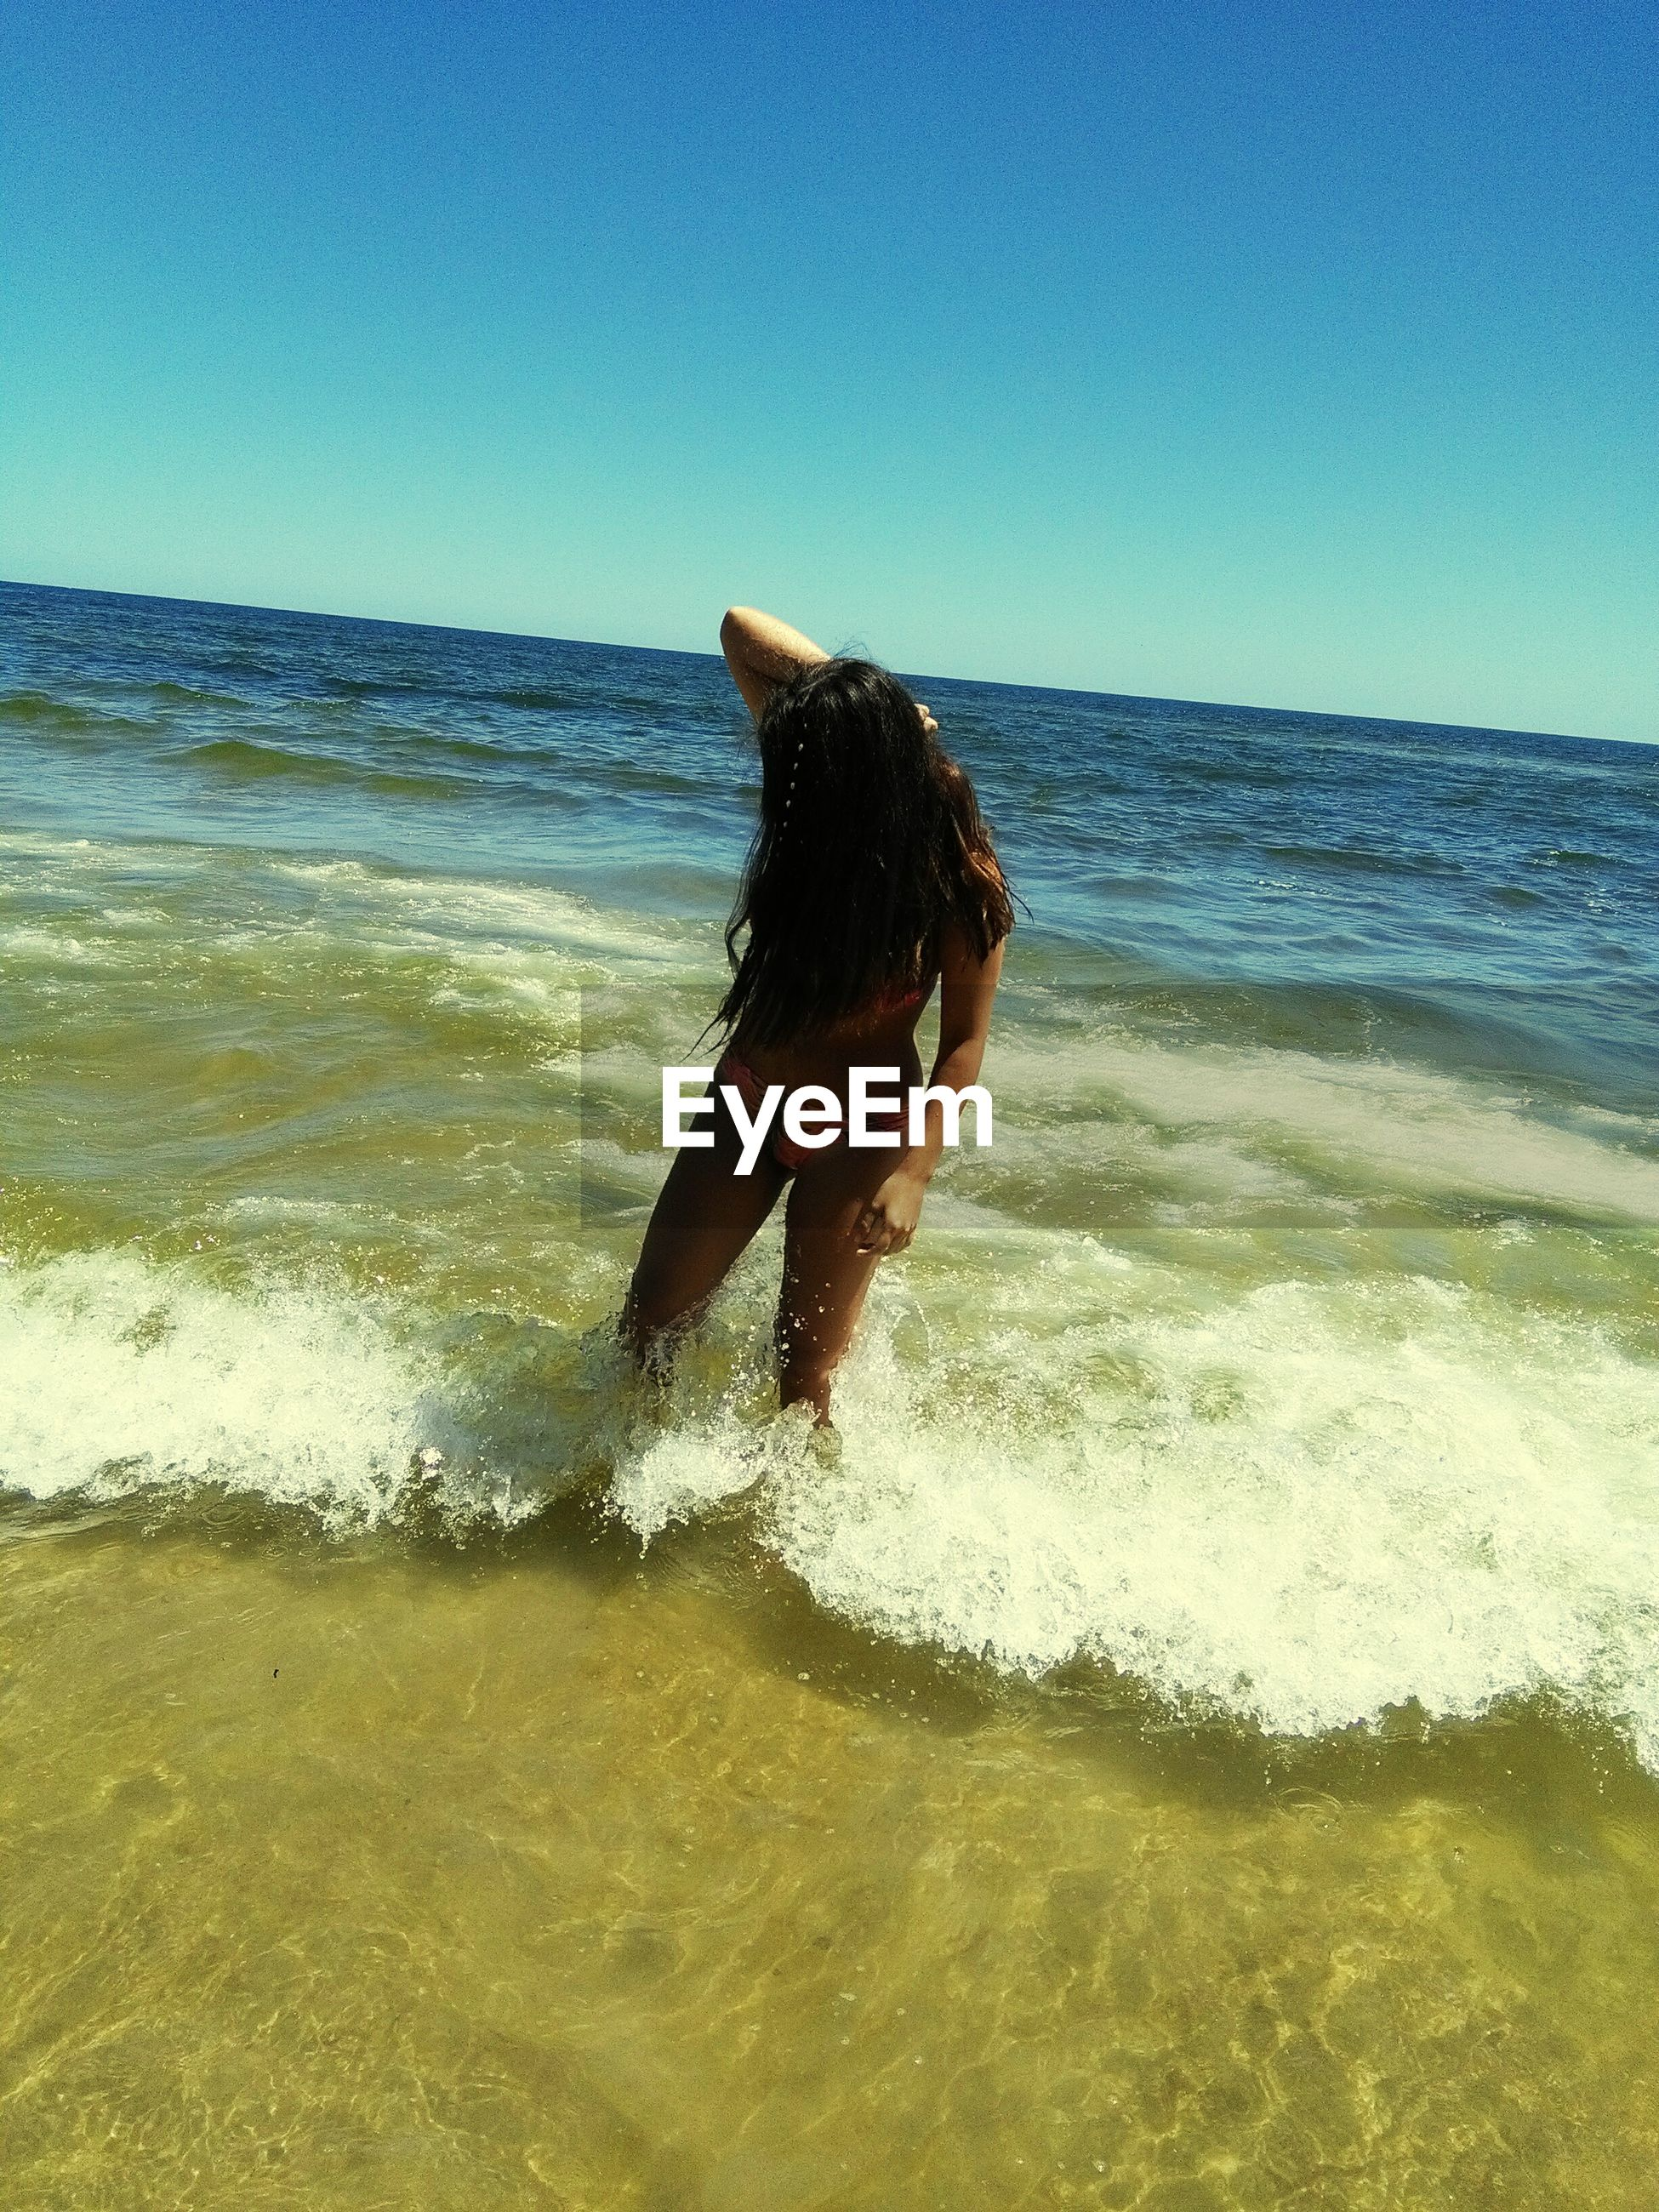 sea, beach, water, horizon over water, sand, shore, clear sky, sky, nature, day, real people, sunlight, wave, outdoors, beauty in nature, scenics, one person, mammal, animal themes, people